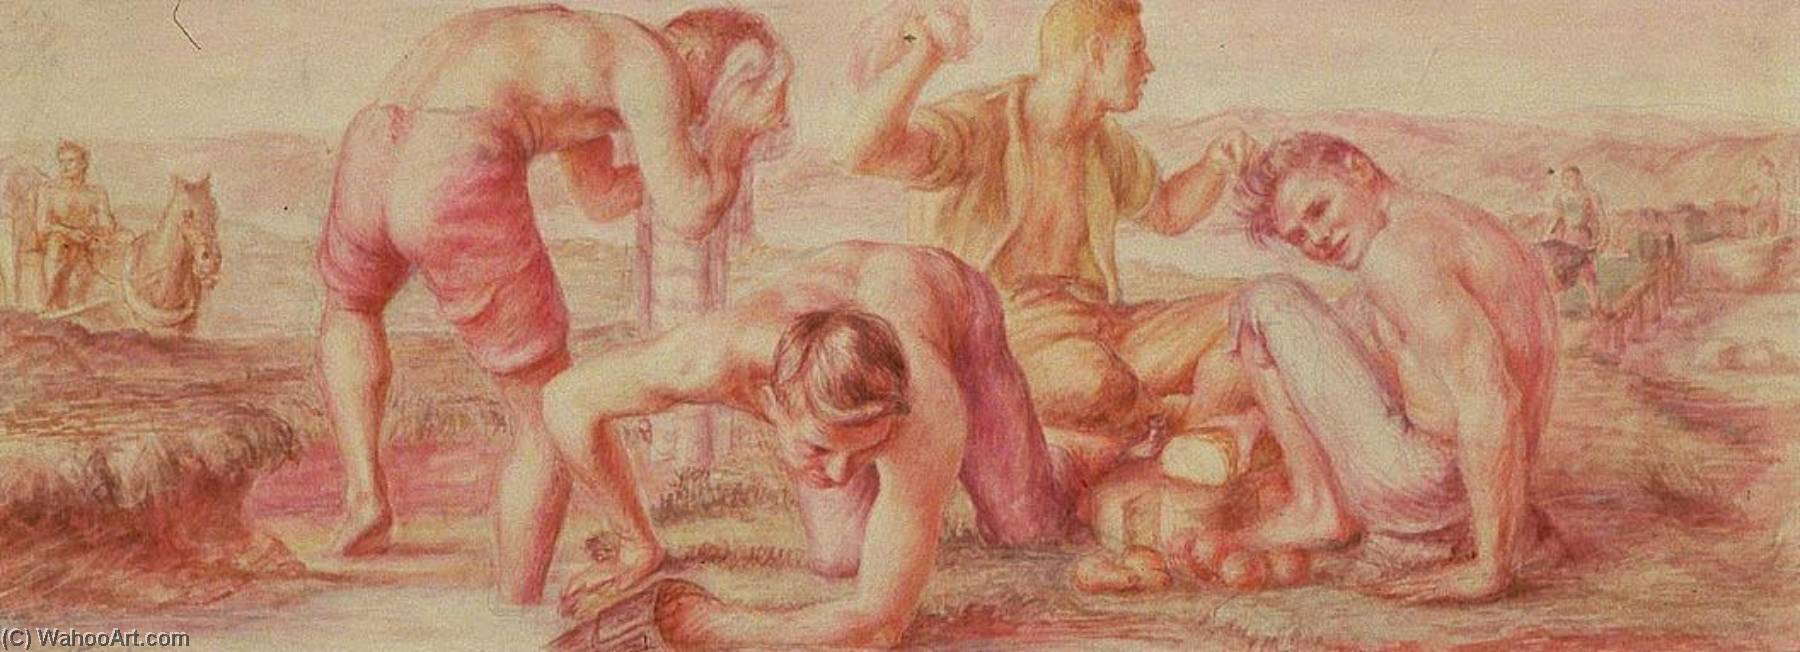 Mealtime, The Early Coal Miners (study for Plymouth, Pennsylvania Post Office Mural), Watercolour by Jared French (1905-1988, United States)